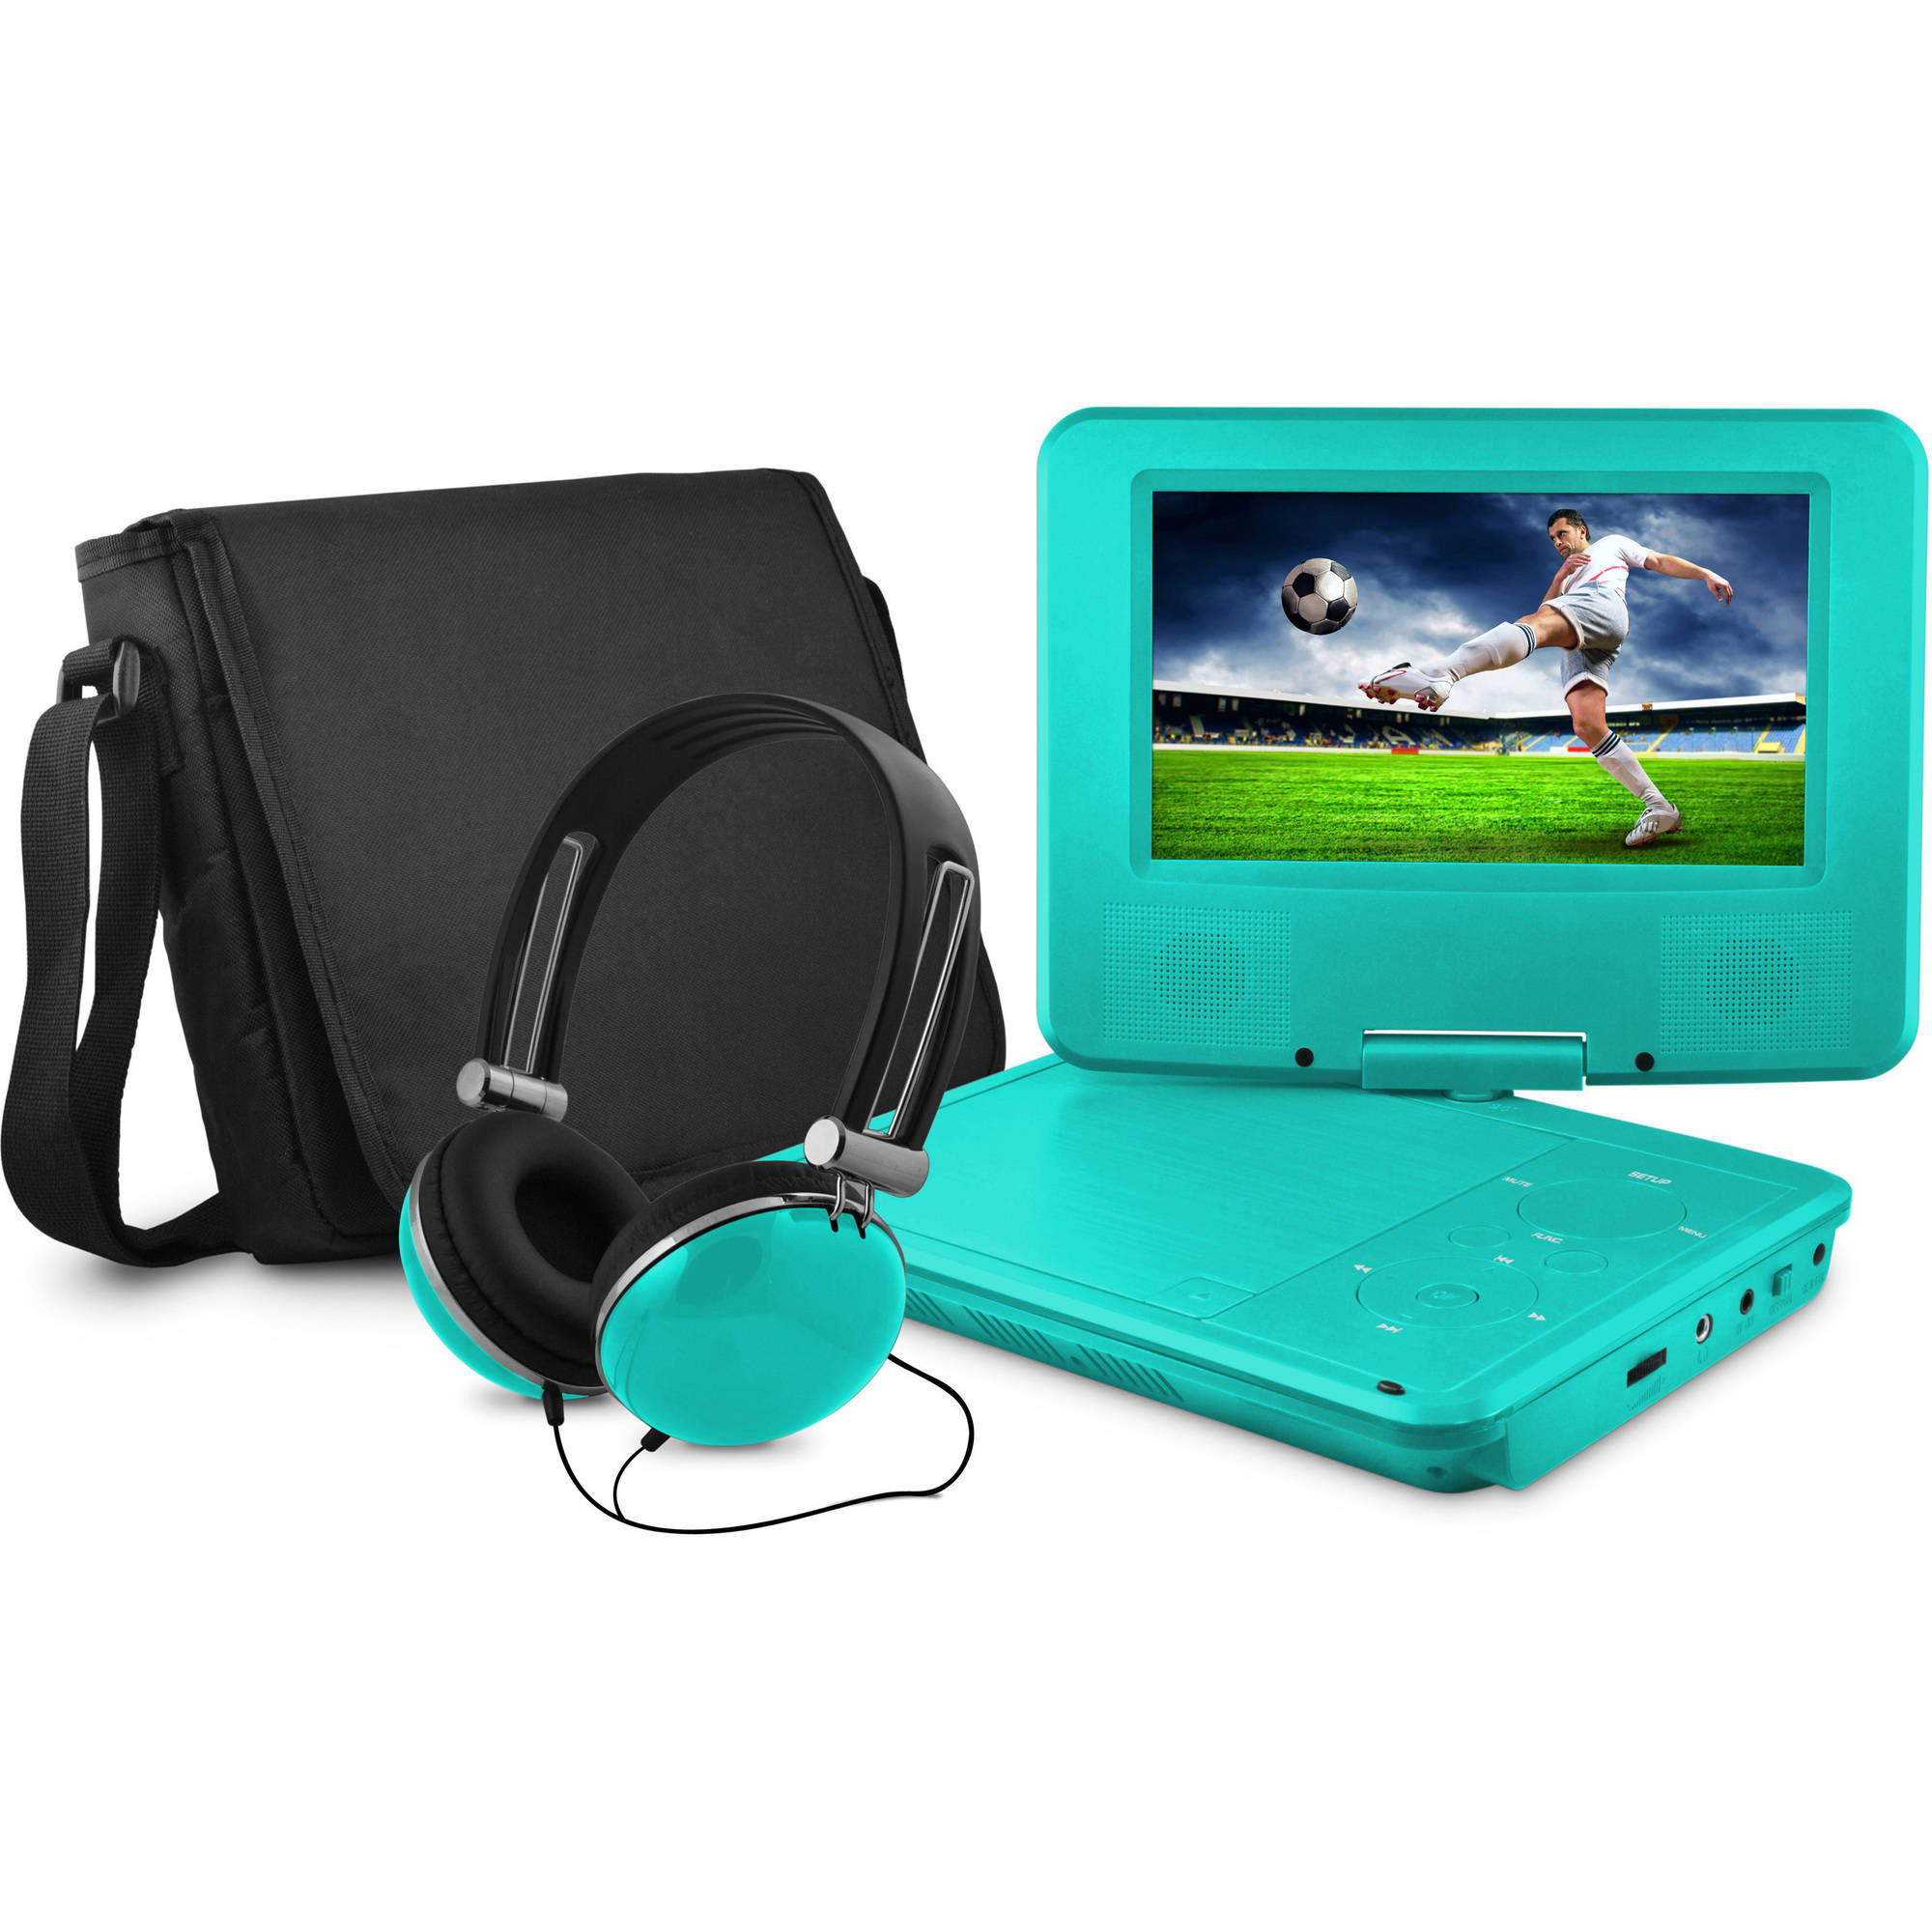 "Onn by Walmart 7"" portable dvd player with matching headphones and bag"